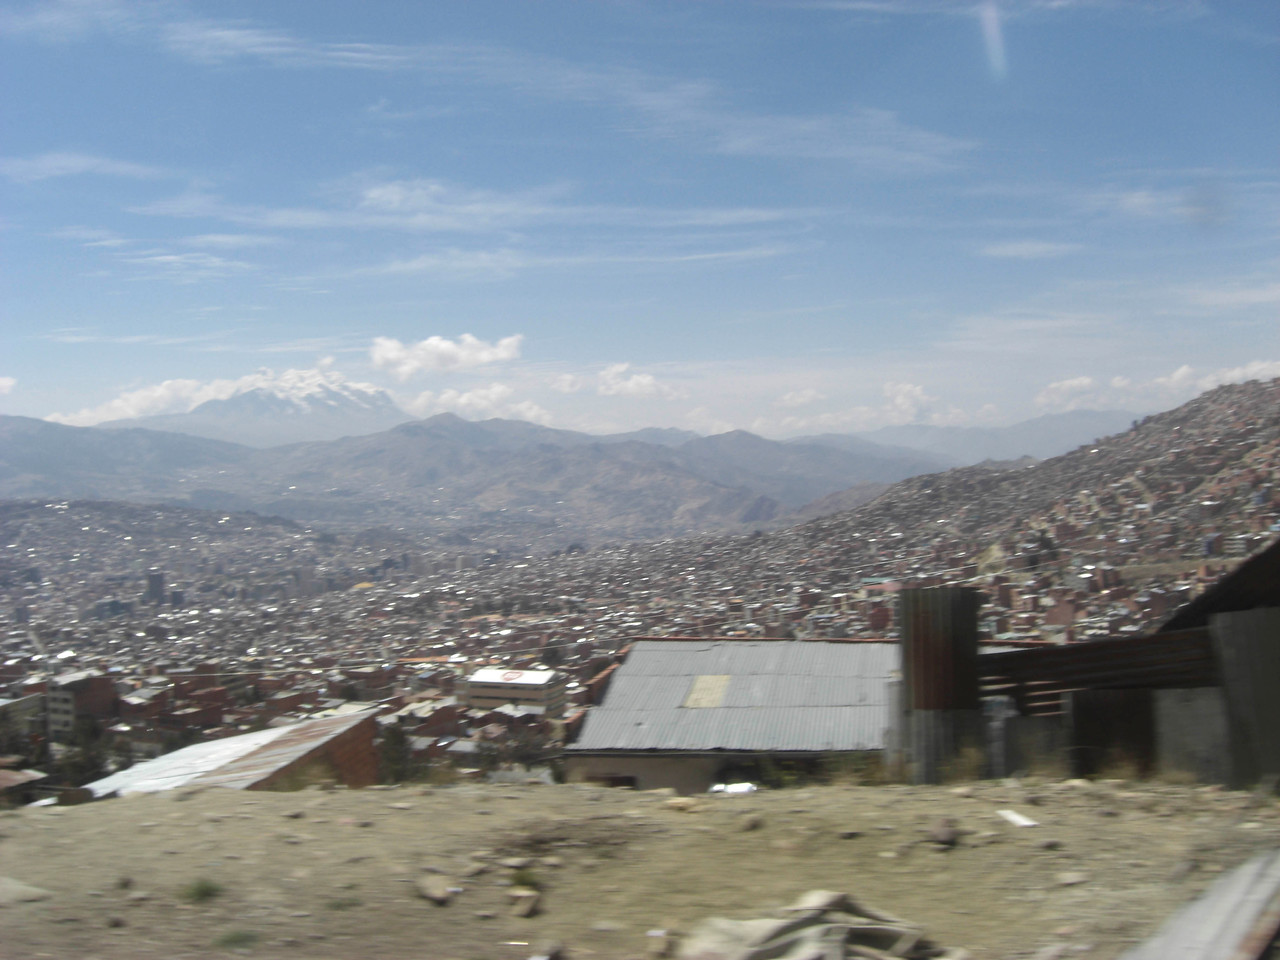 The first view of the city at 4200m